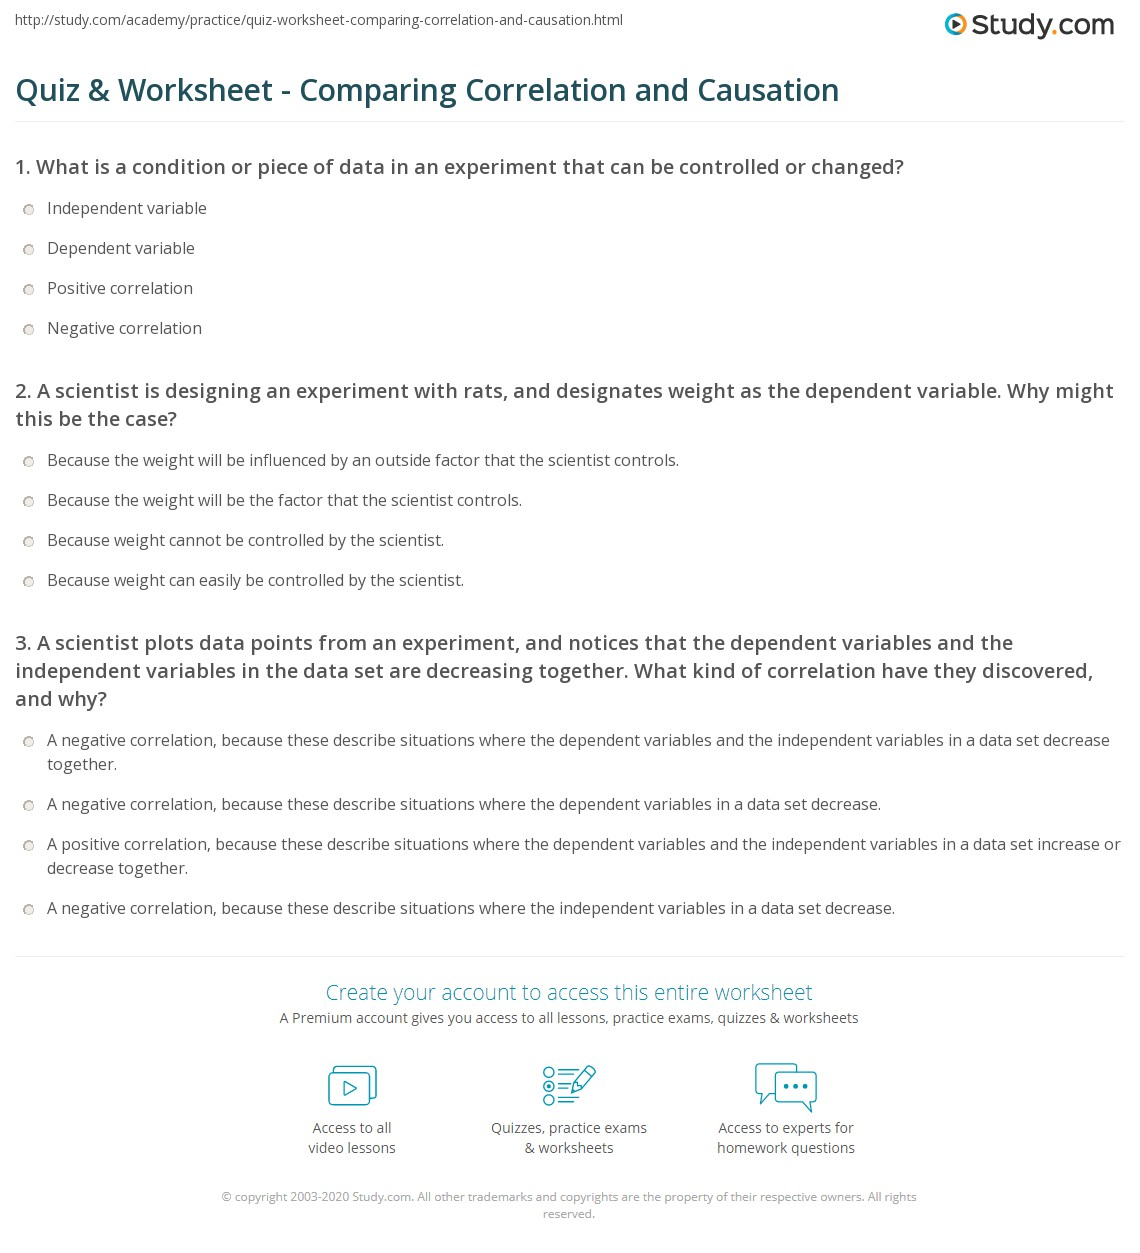 Aldiablosus  Surprising Quiz Amp Worksheet  Comparing Correlation And Causation  Studycom With Lovable Print Correlation Vs Causation Differences Amp Definition Worksheet With Amazing Teacher Worksheets Also Types Of Reactions Worksheet In Addition Qualified Dividends And Capital Gain Tax Worksheet And Sequencing Worksheets As Well As Printable Worksheets Additionally Letter A Worksheets From Studycom With Aldiablosus  Lovable Quiz Amp Worksheet  Comparing Correlation And Causation  Studycom With Amazing Print Correlation Vs Causation Differences Amp Definition Worksheet And Surprising Teacher Worksheets Also Types Of Reactions Worksheet In Addition Qualified Dividends And Capital Gain Tax Worksheet From Studycom